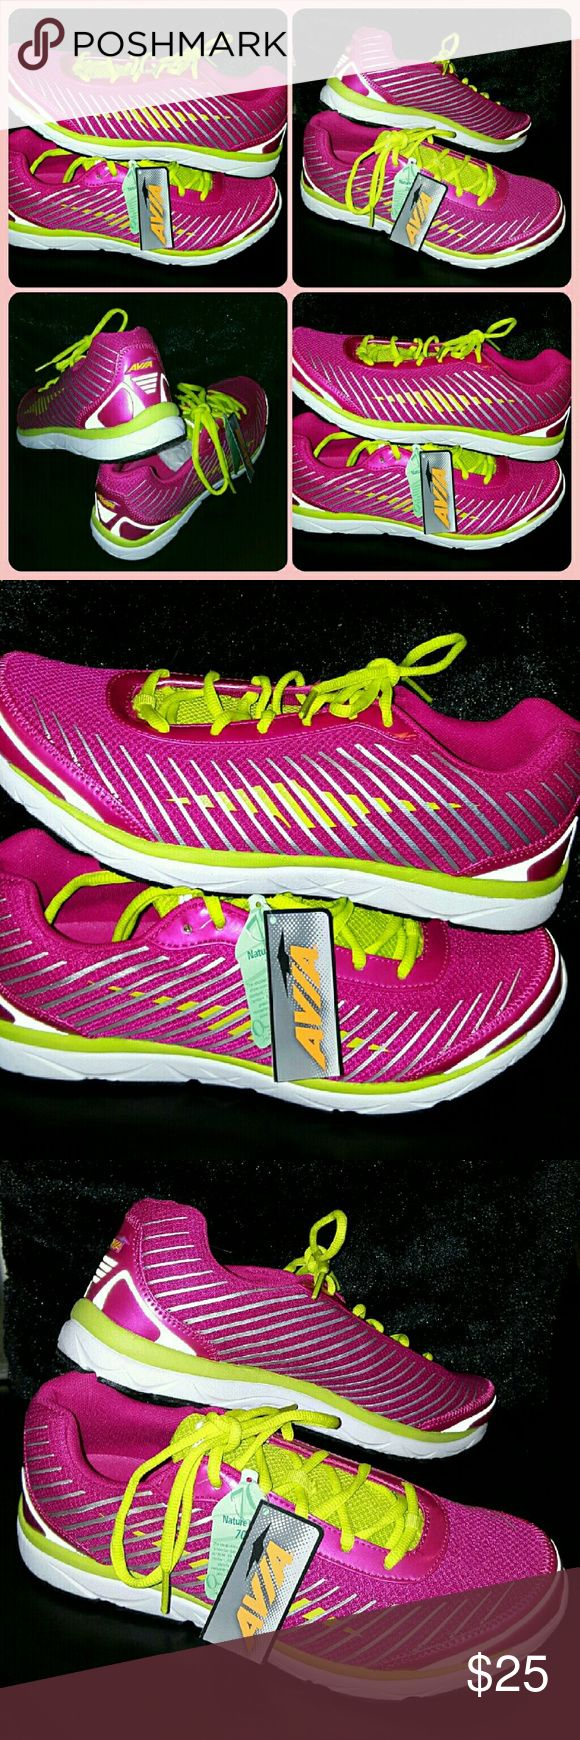 """🔮NEW/TAGS AVIA LYNX PINK ATHLETIC TENNIS SHOES BRAND NEW/NEVER WORN with TAGZ SUPERCOOL LOOKIN AVIA """"lynx"""" ATHLETIC TENNIS SHOES Avia Shoes Athletic Shoes"""